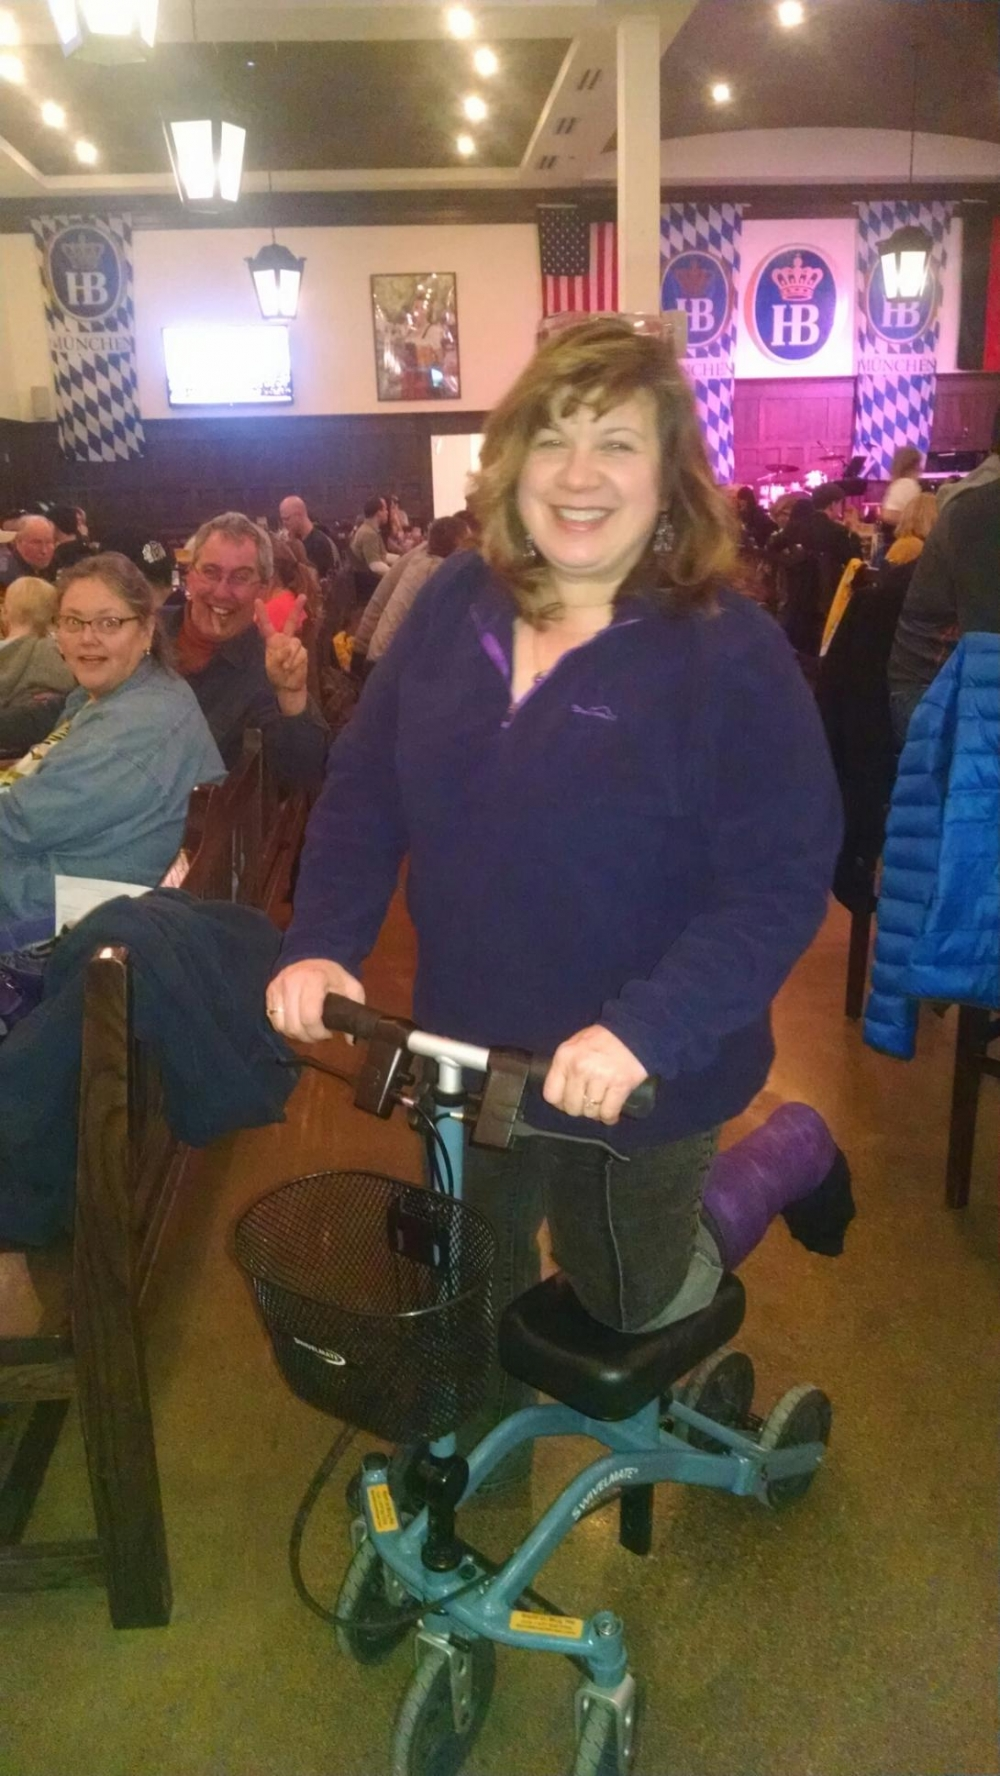 Renee on the Swivelmate Knee Walker from Hampshire Illinois March 2015